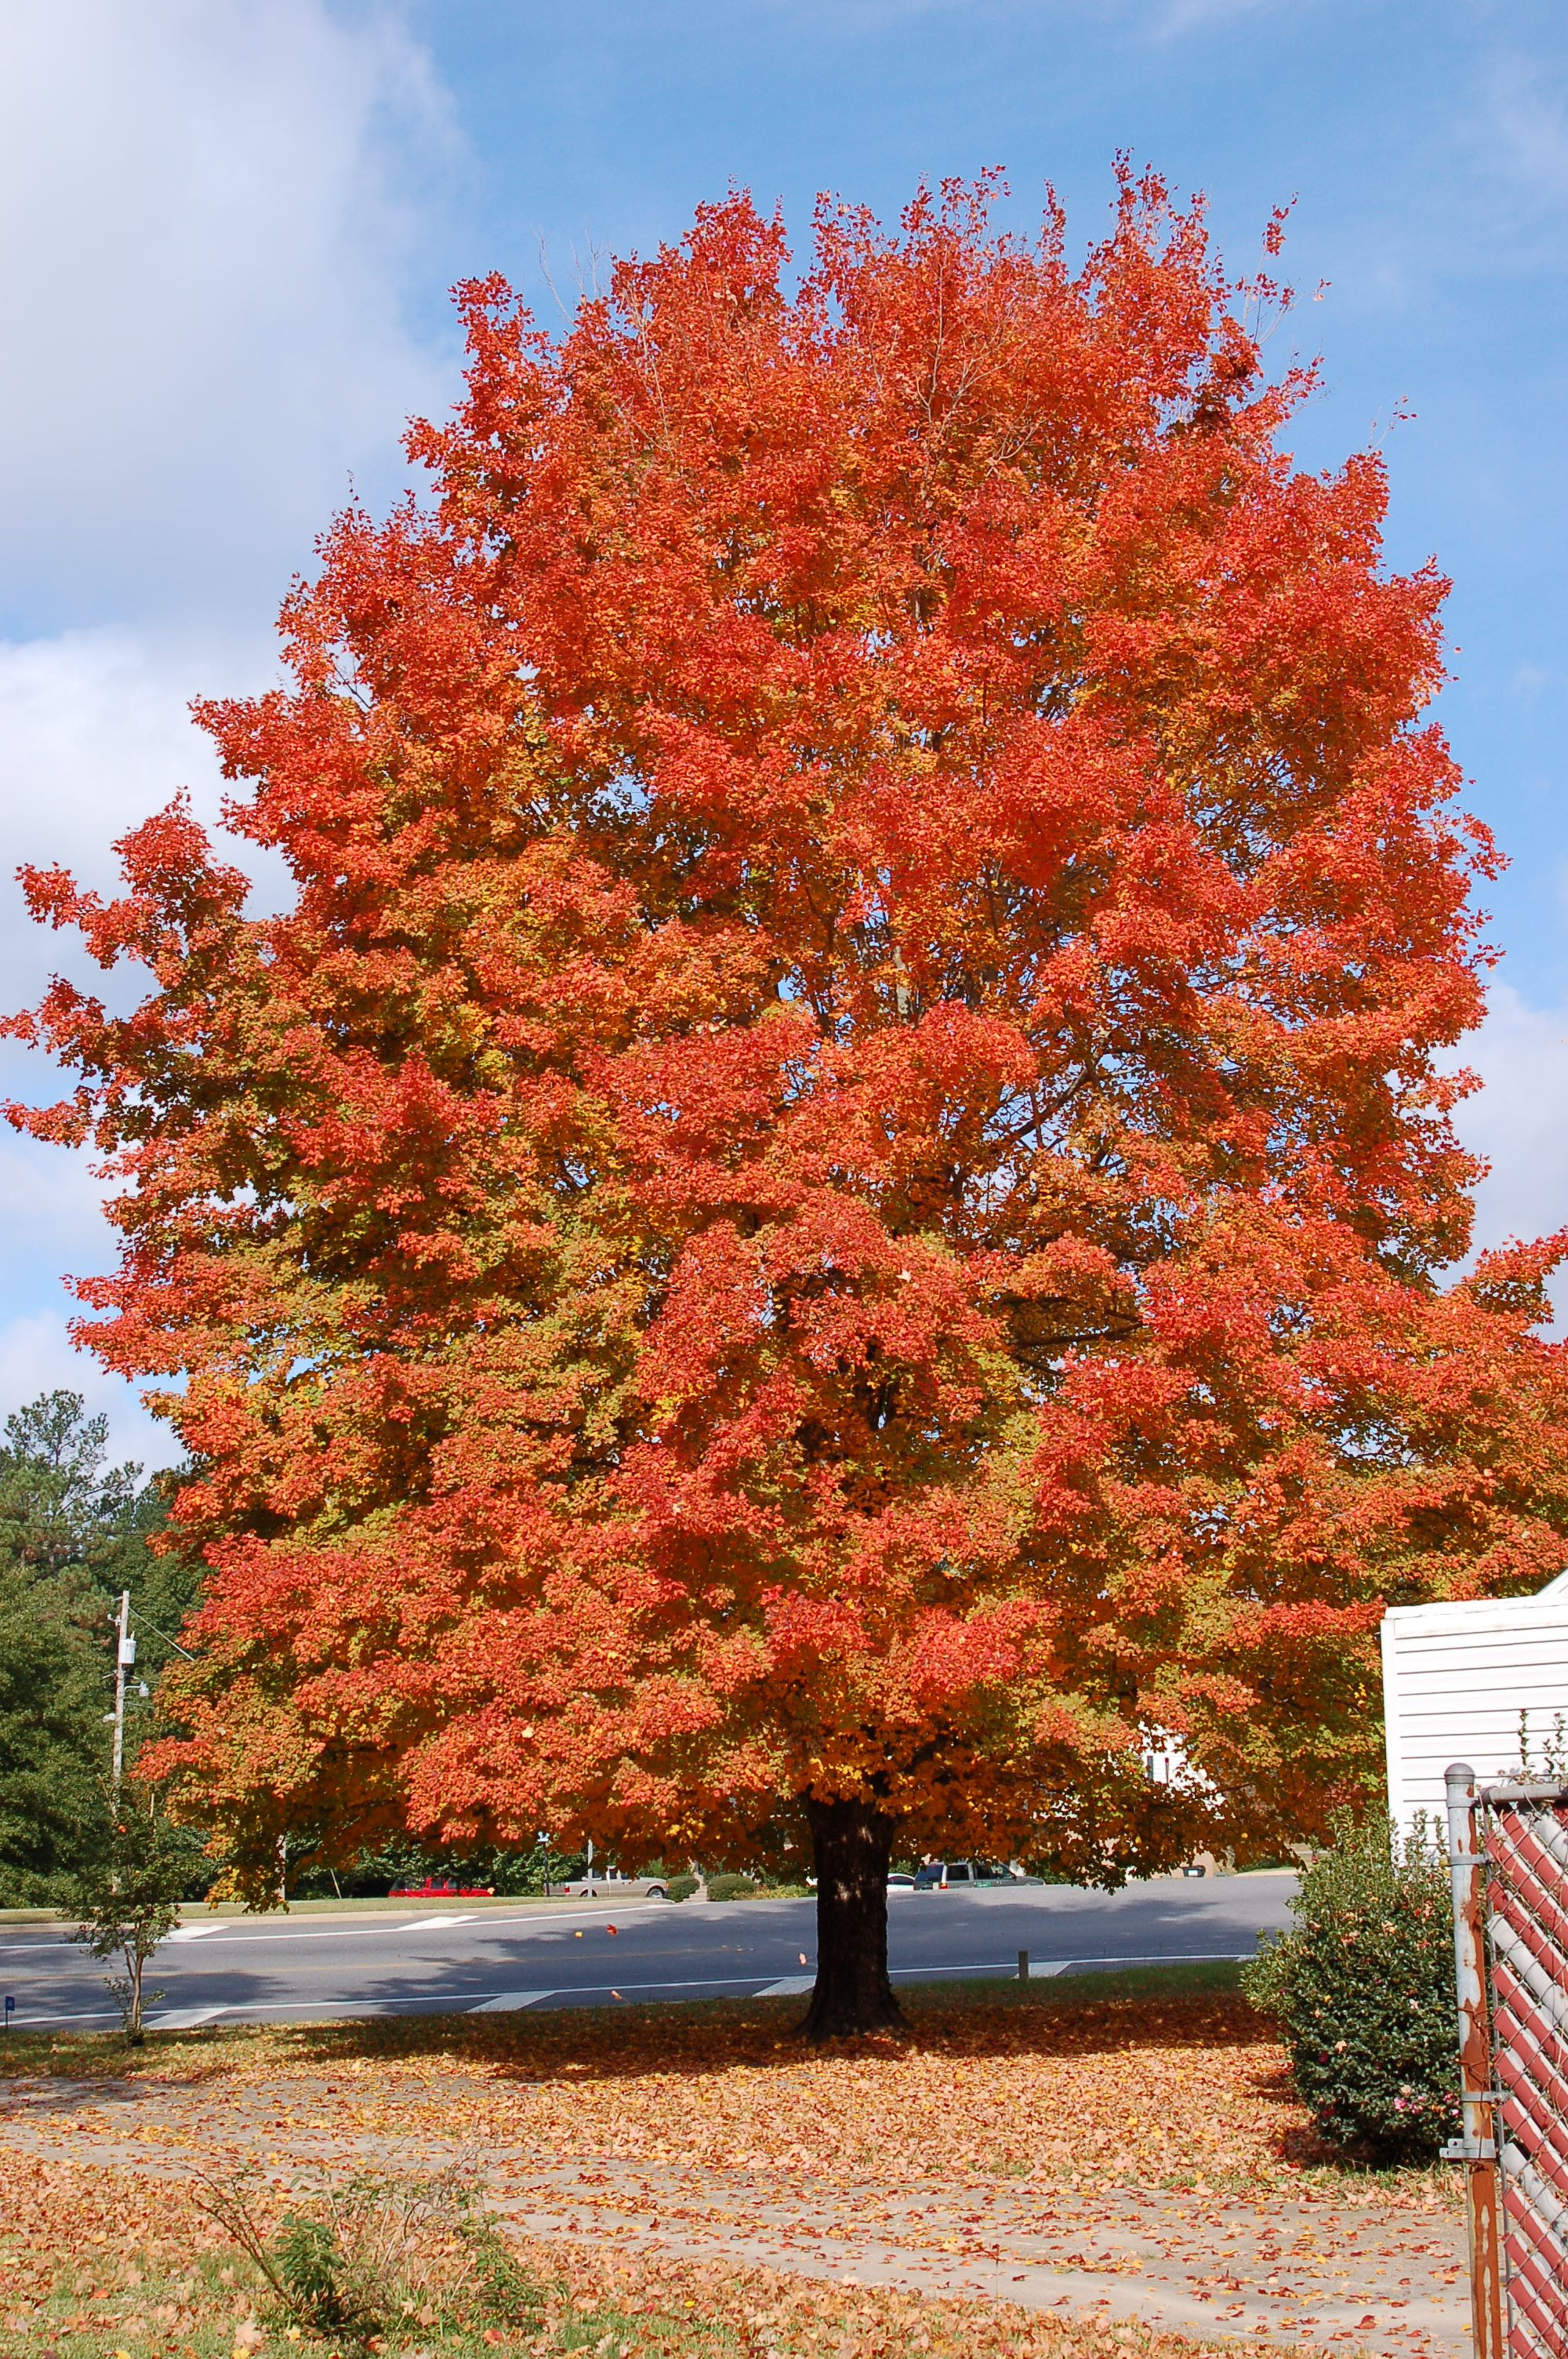 Harvest-Moon-Sugar-Maple-Acer-saccharum-fall-color-habit-2.jpg